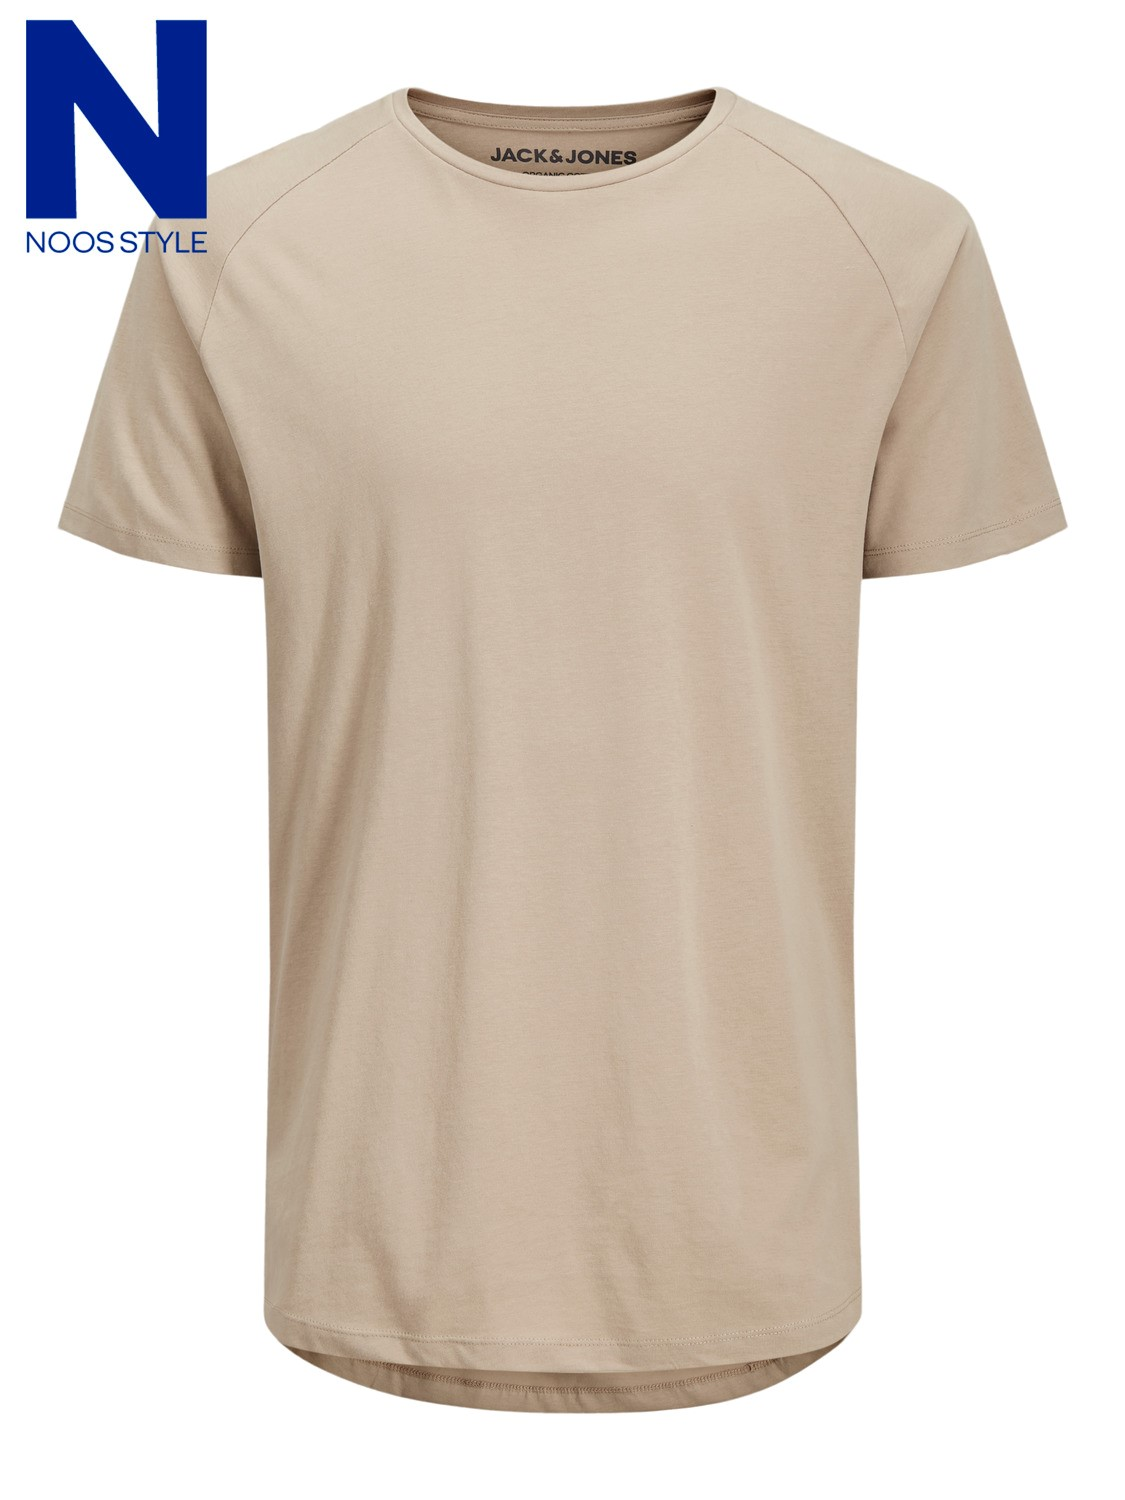 Jack & Jones T-Shirt Curved in 4 Farben